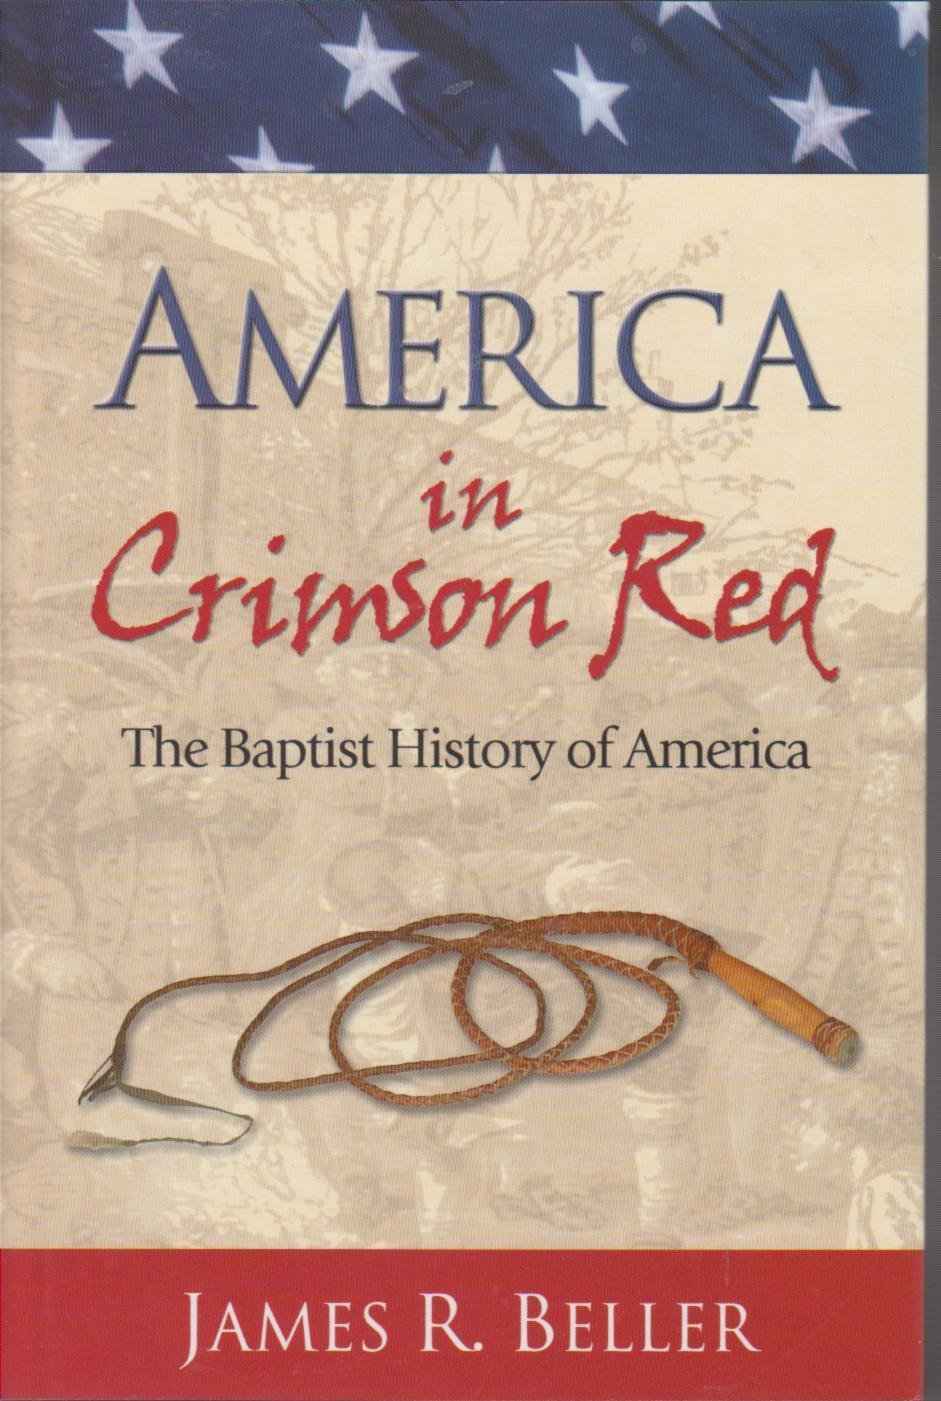 America in Crimson Red by James R. Beller 00002